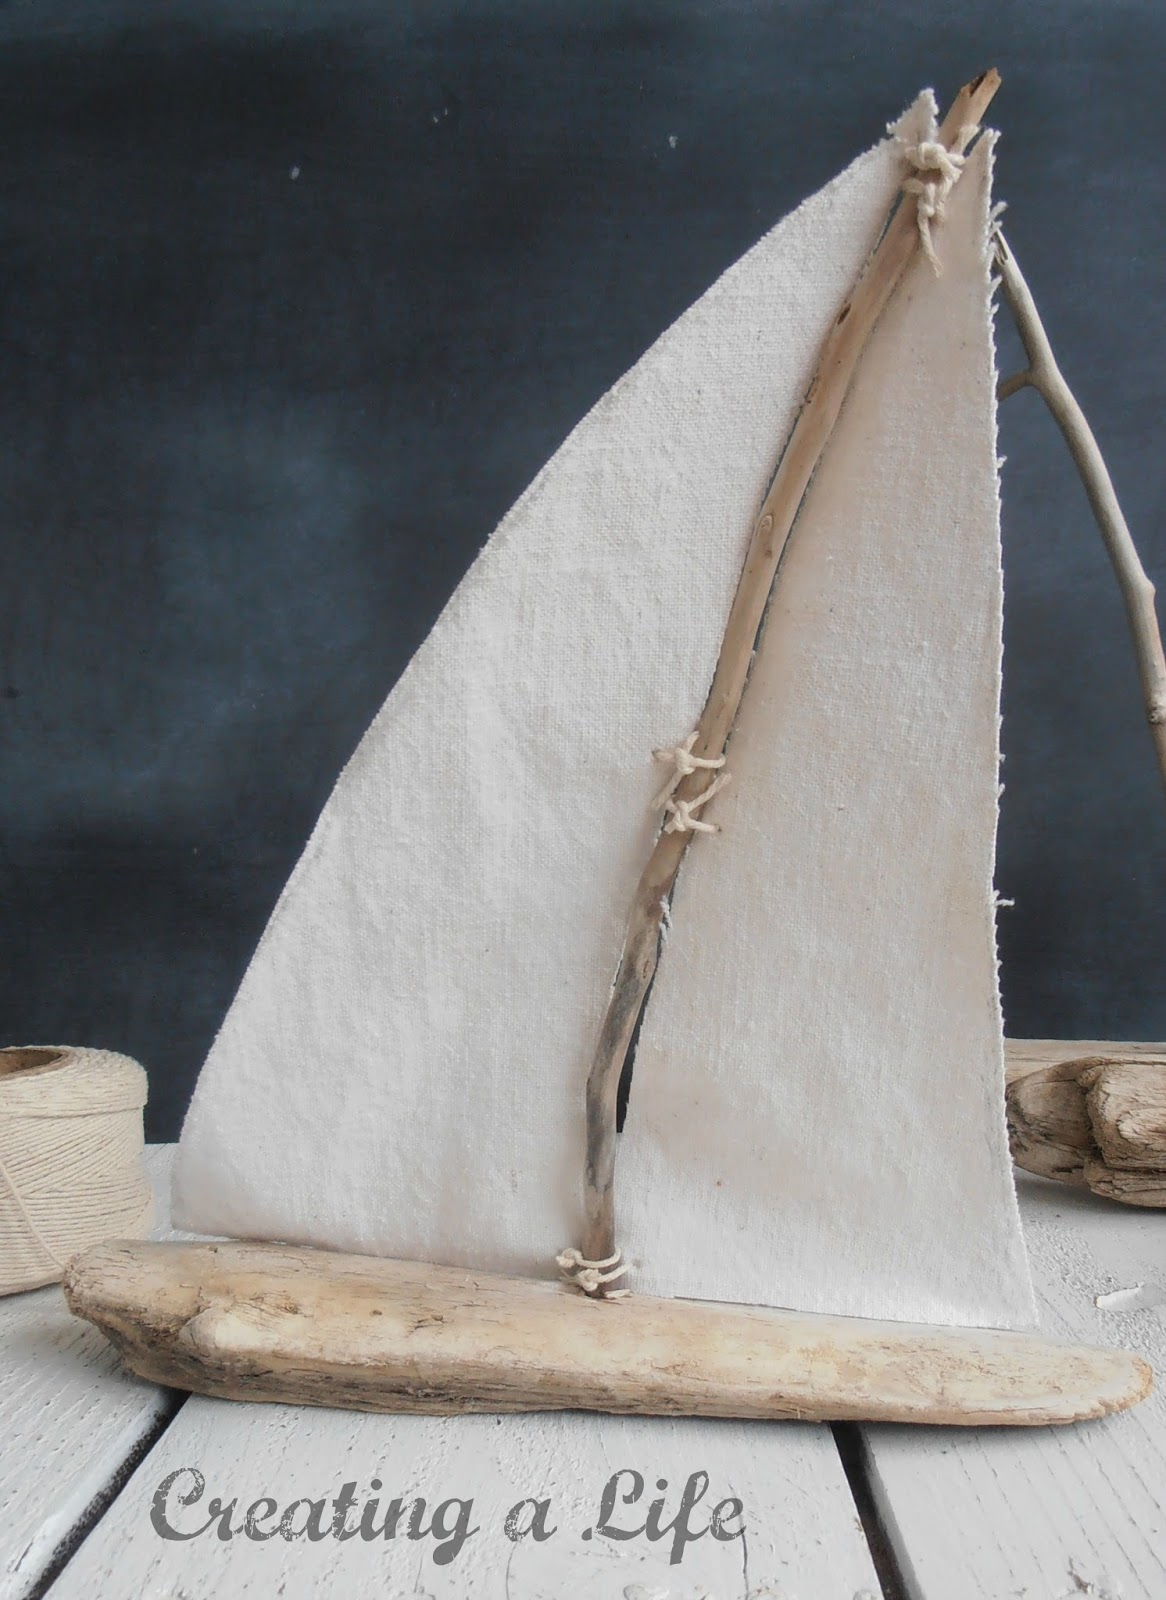 driftwood crafts ideas creating a driftwood sailboats tutorial 1904